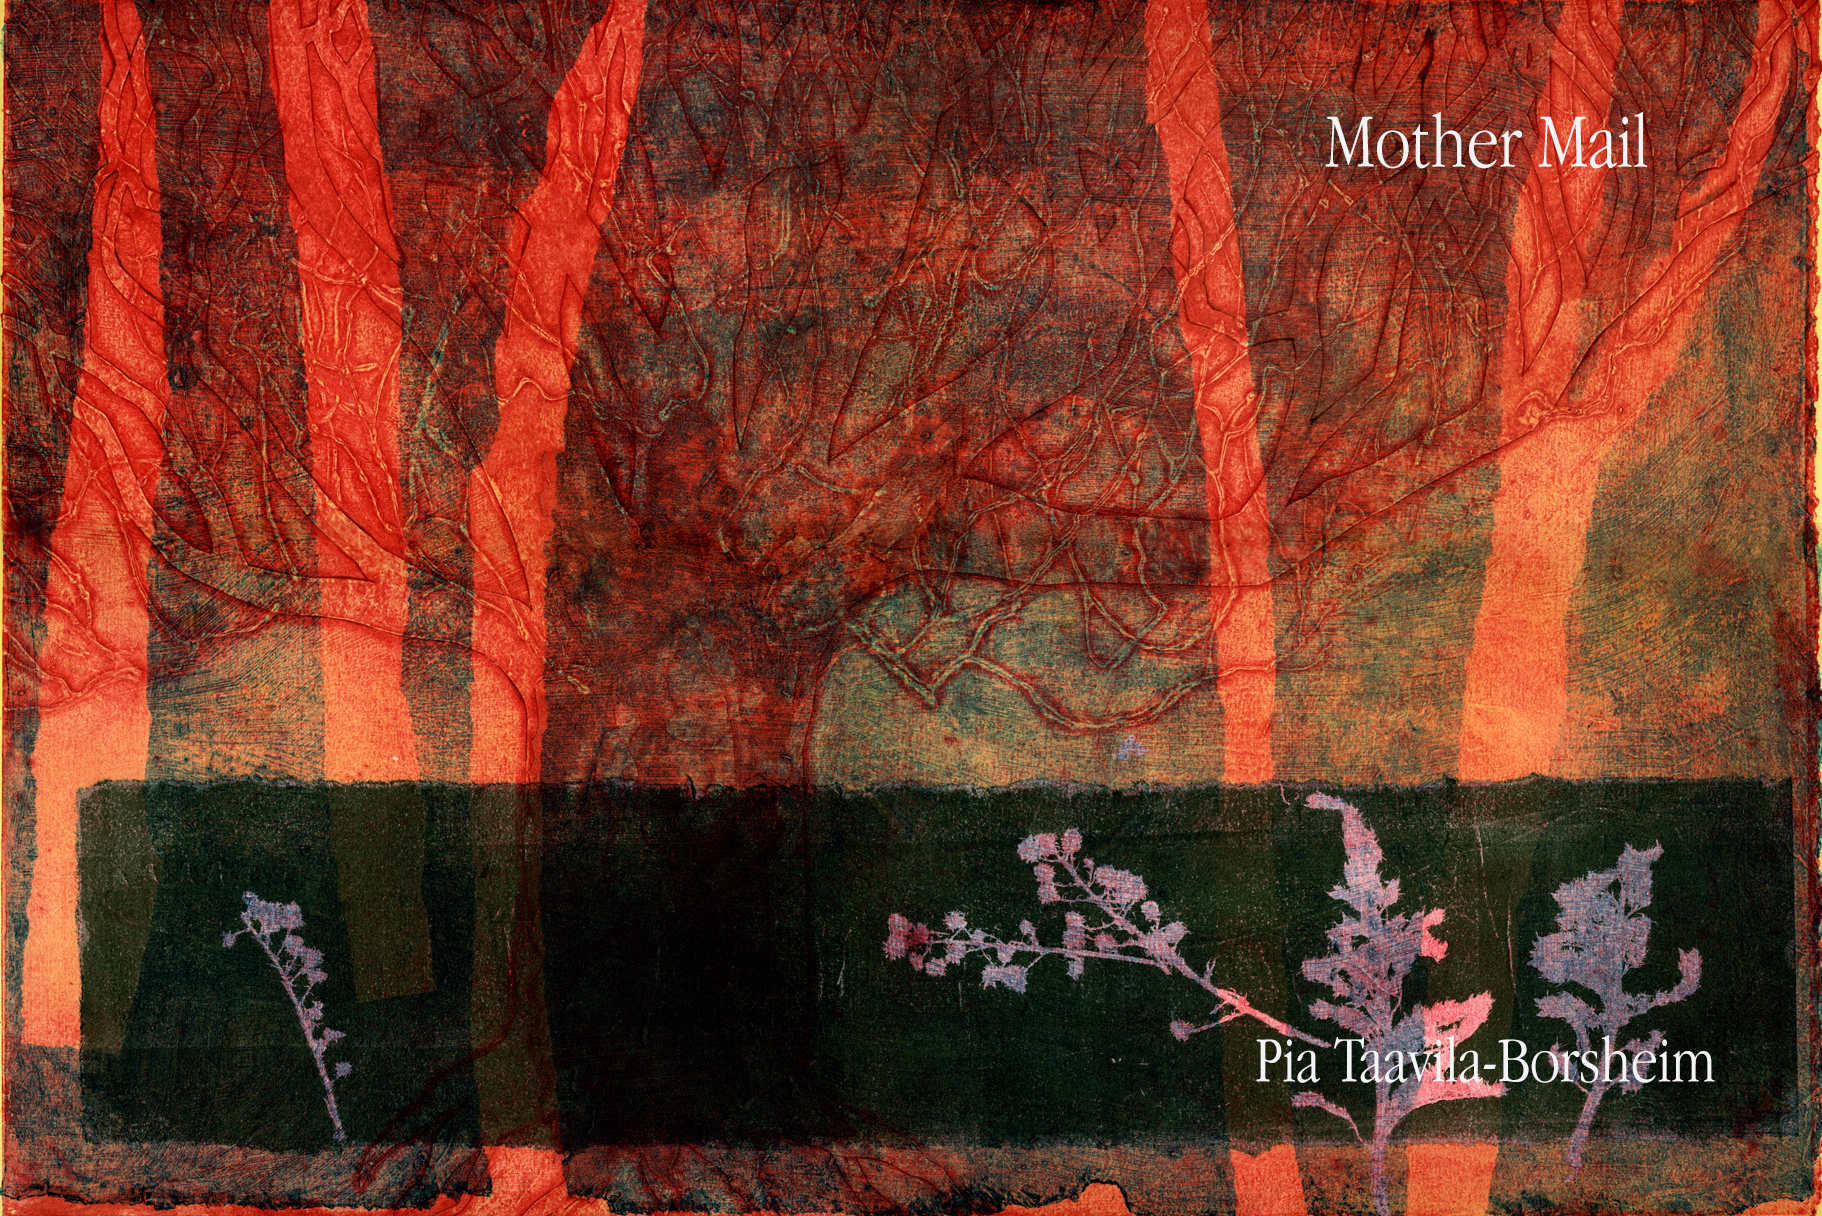 mother mail cover art with text